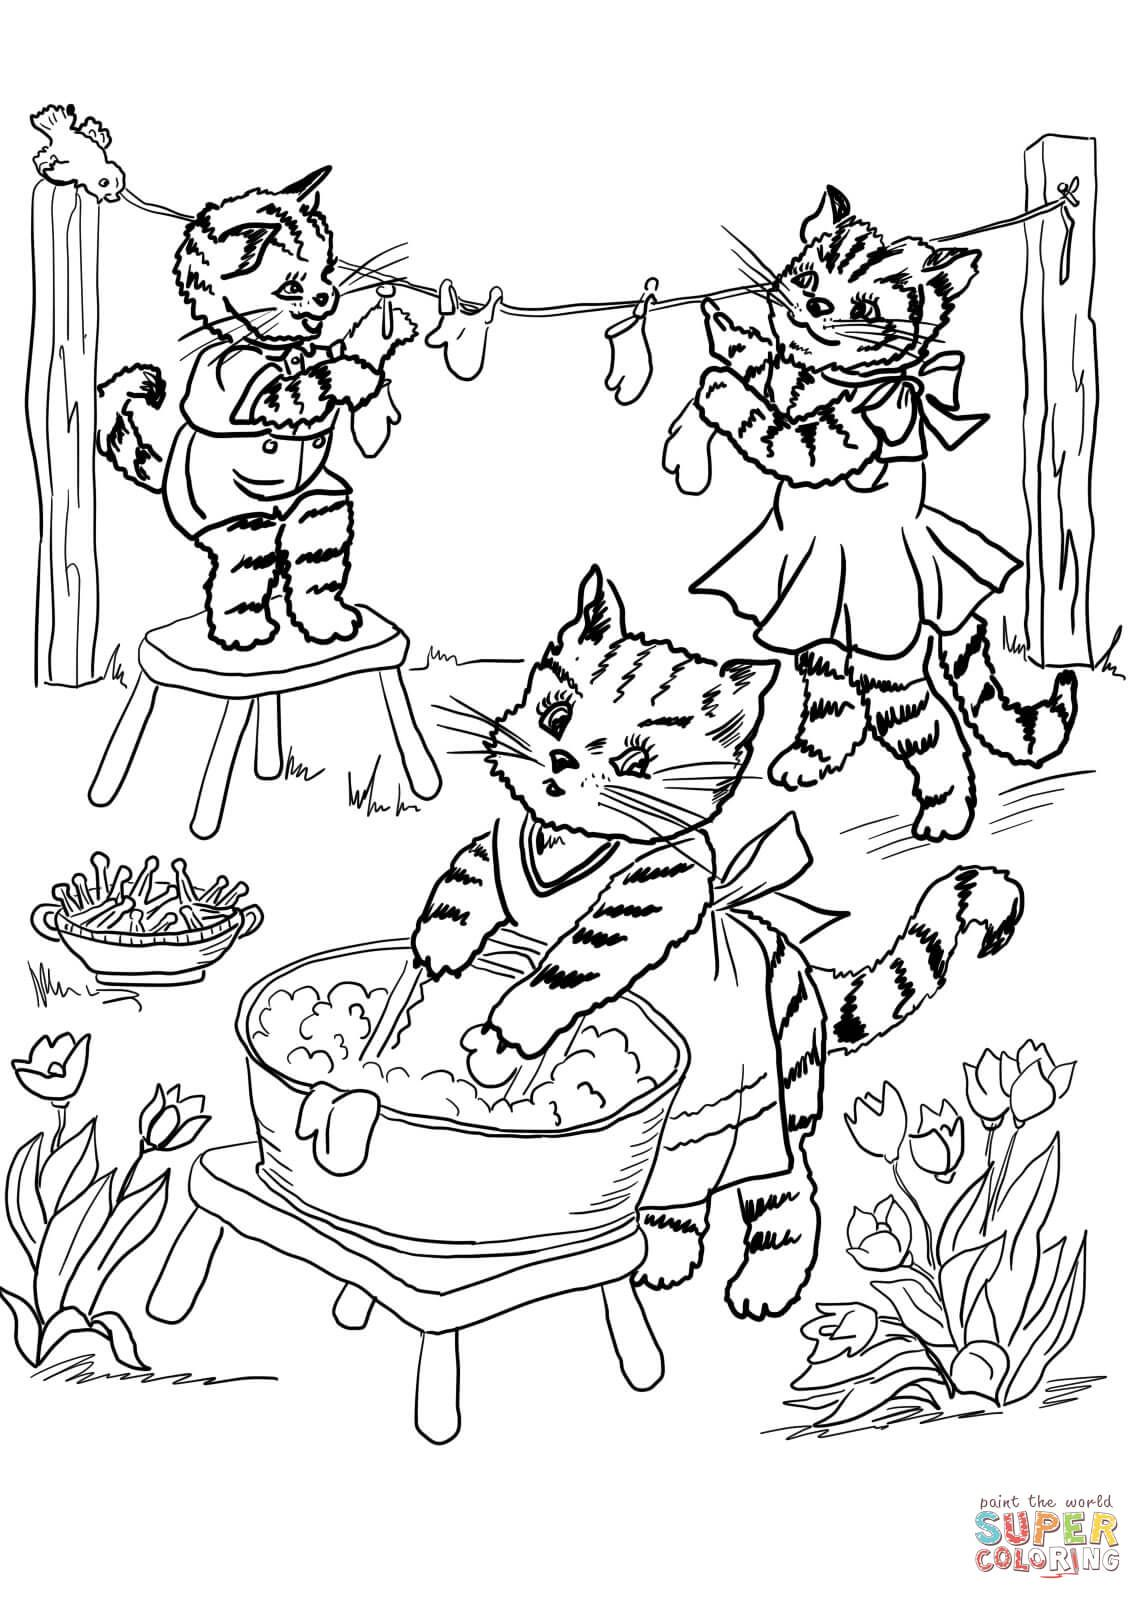 Three Little Kittens Coloring Page Free Printable Coloring Pages